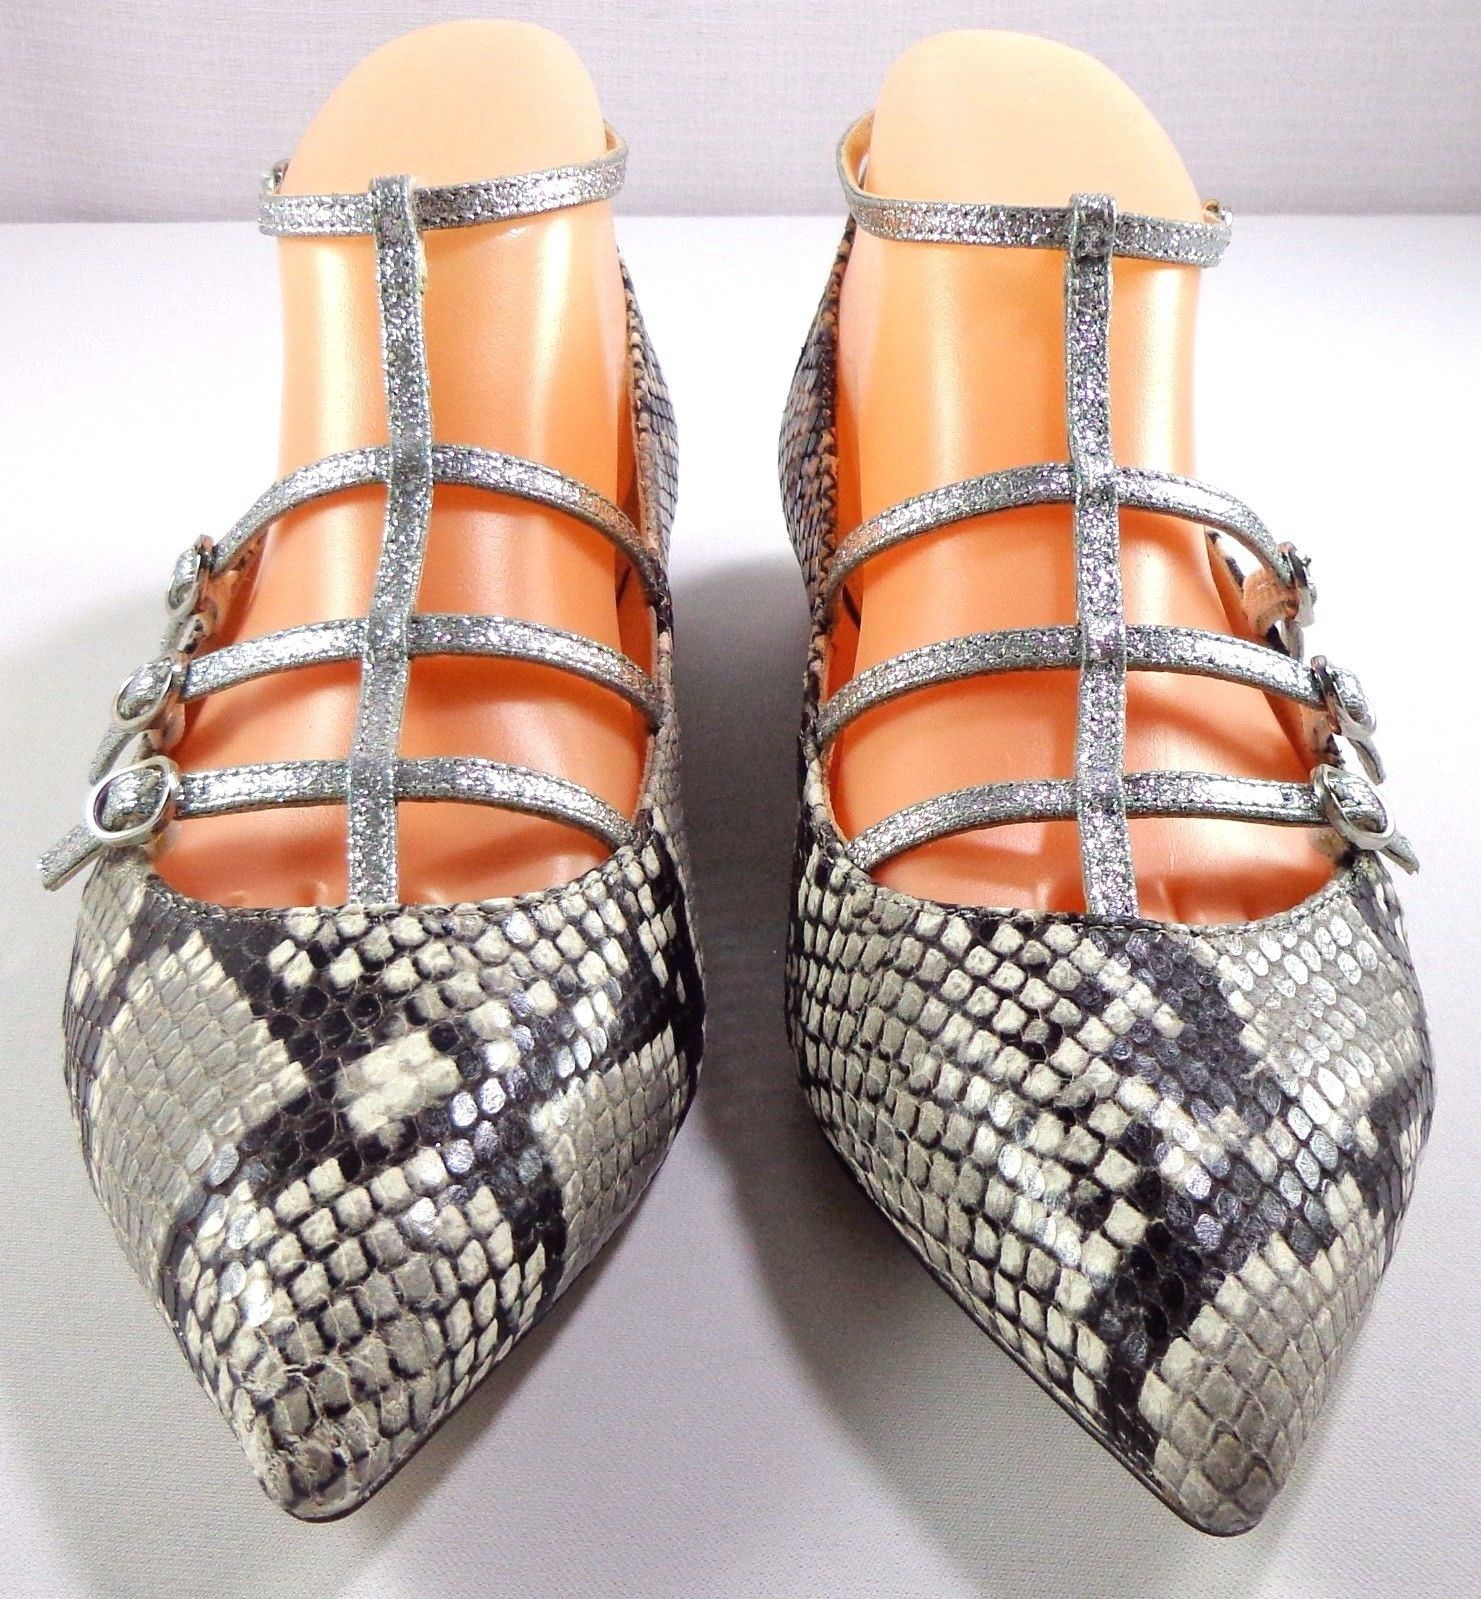 7160728093c8 J Crew Women s Caged Flats in Snakeskin and 50 similar items